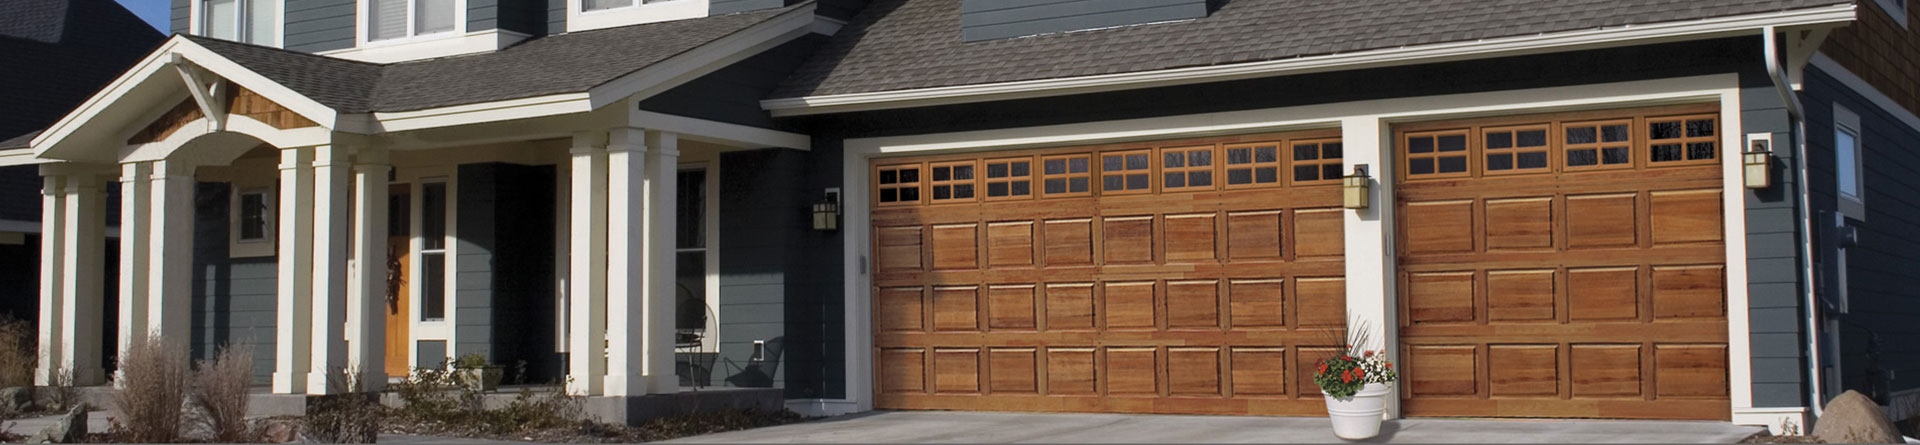 Garage Door Parts Company Images Design Ideas